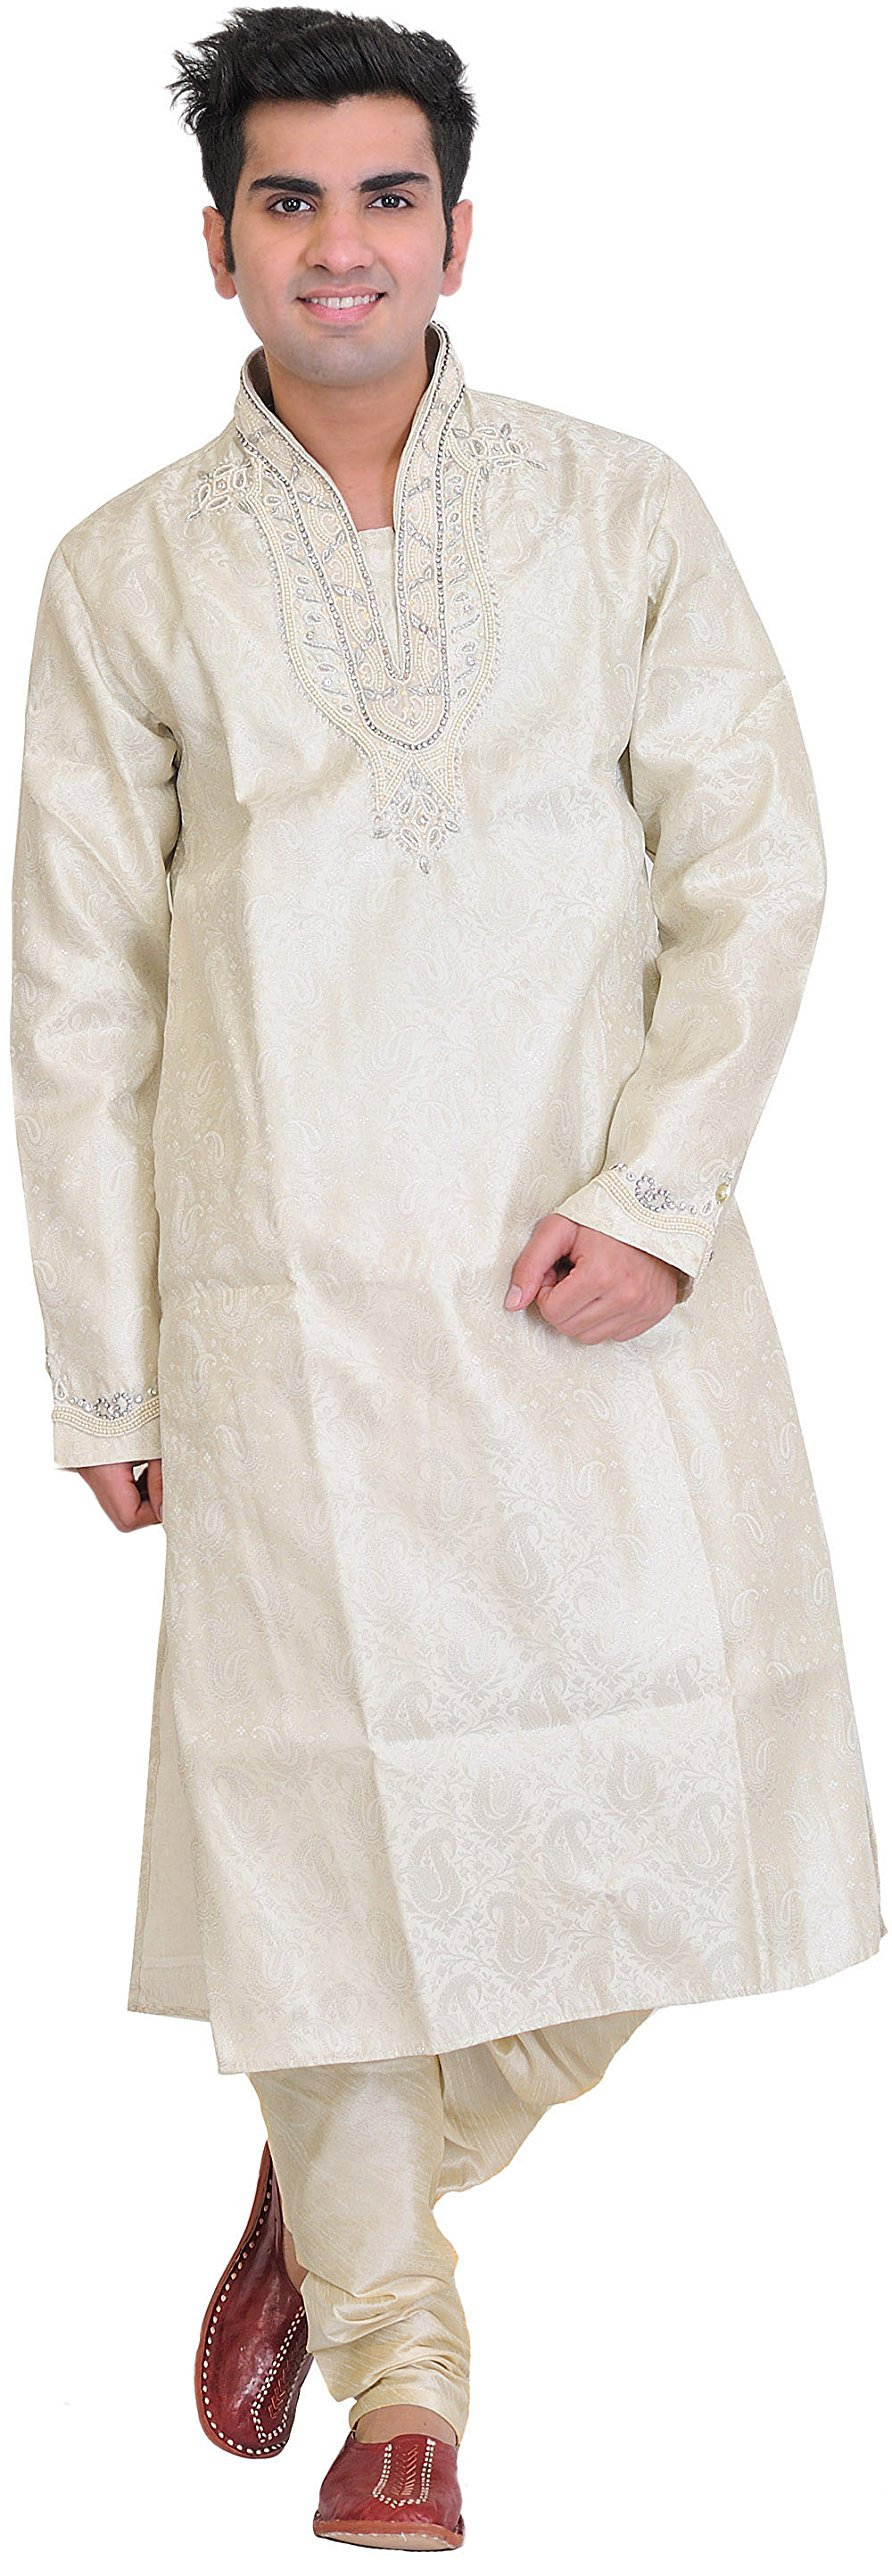 Exotic India Cloud-Cream Wedding Kurta Paja - Off-White Size 38